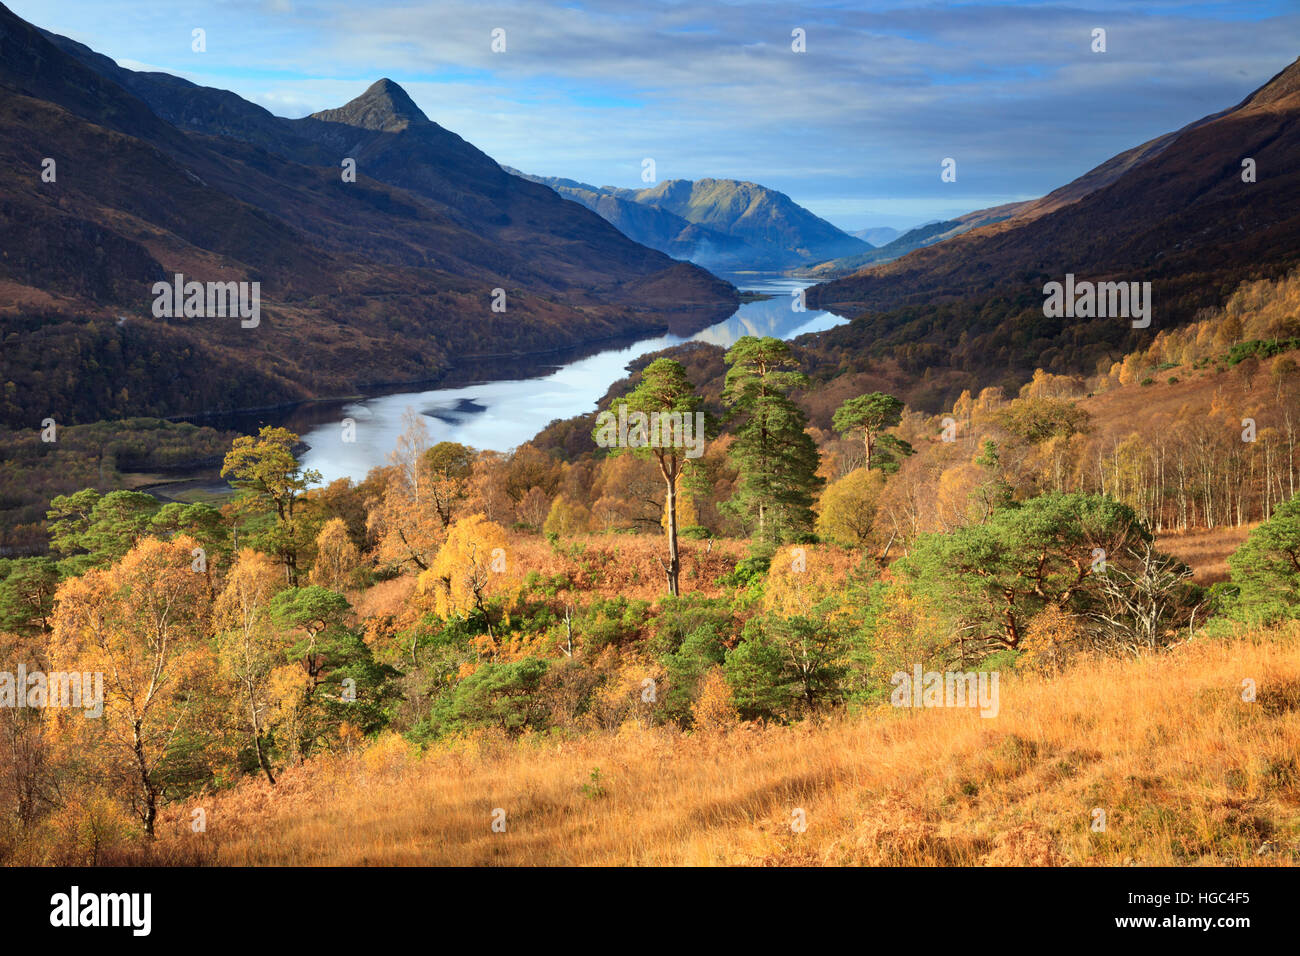 The Pap of Glen and Loch Leven captured from the footpath to Mamore Lodge. - Stock Image